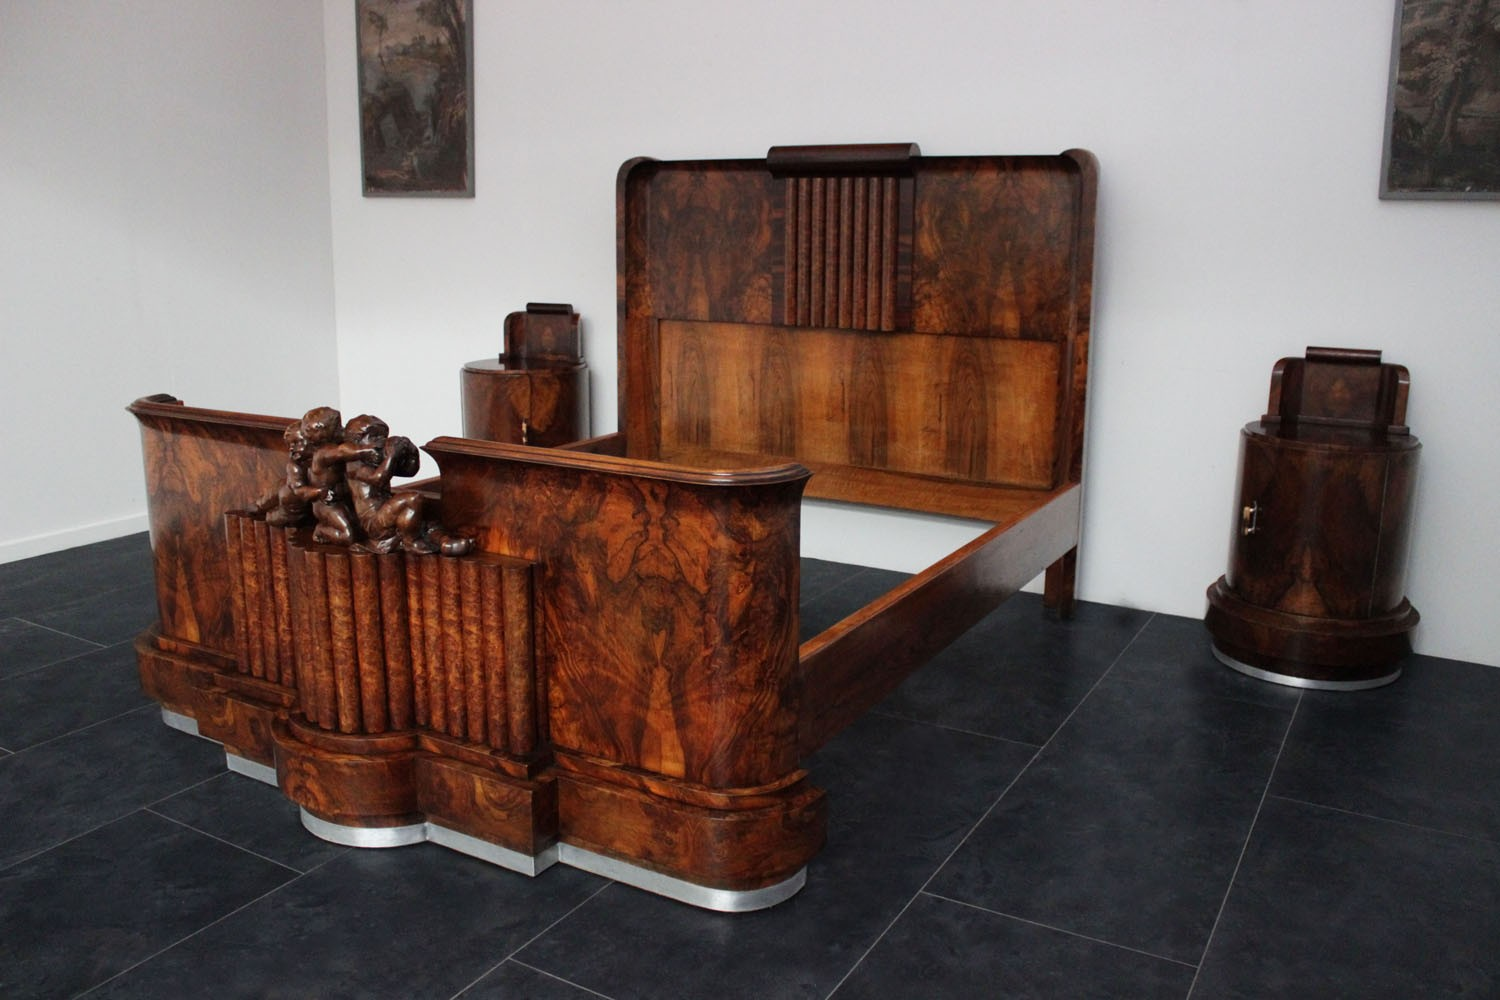 Camere Da Letto Art Deco : Letto art deco con putti marco polo antiques online